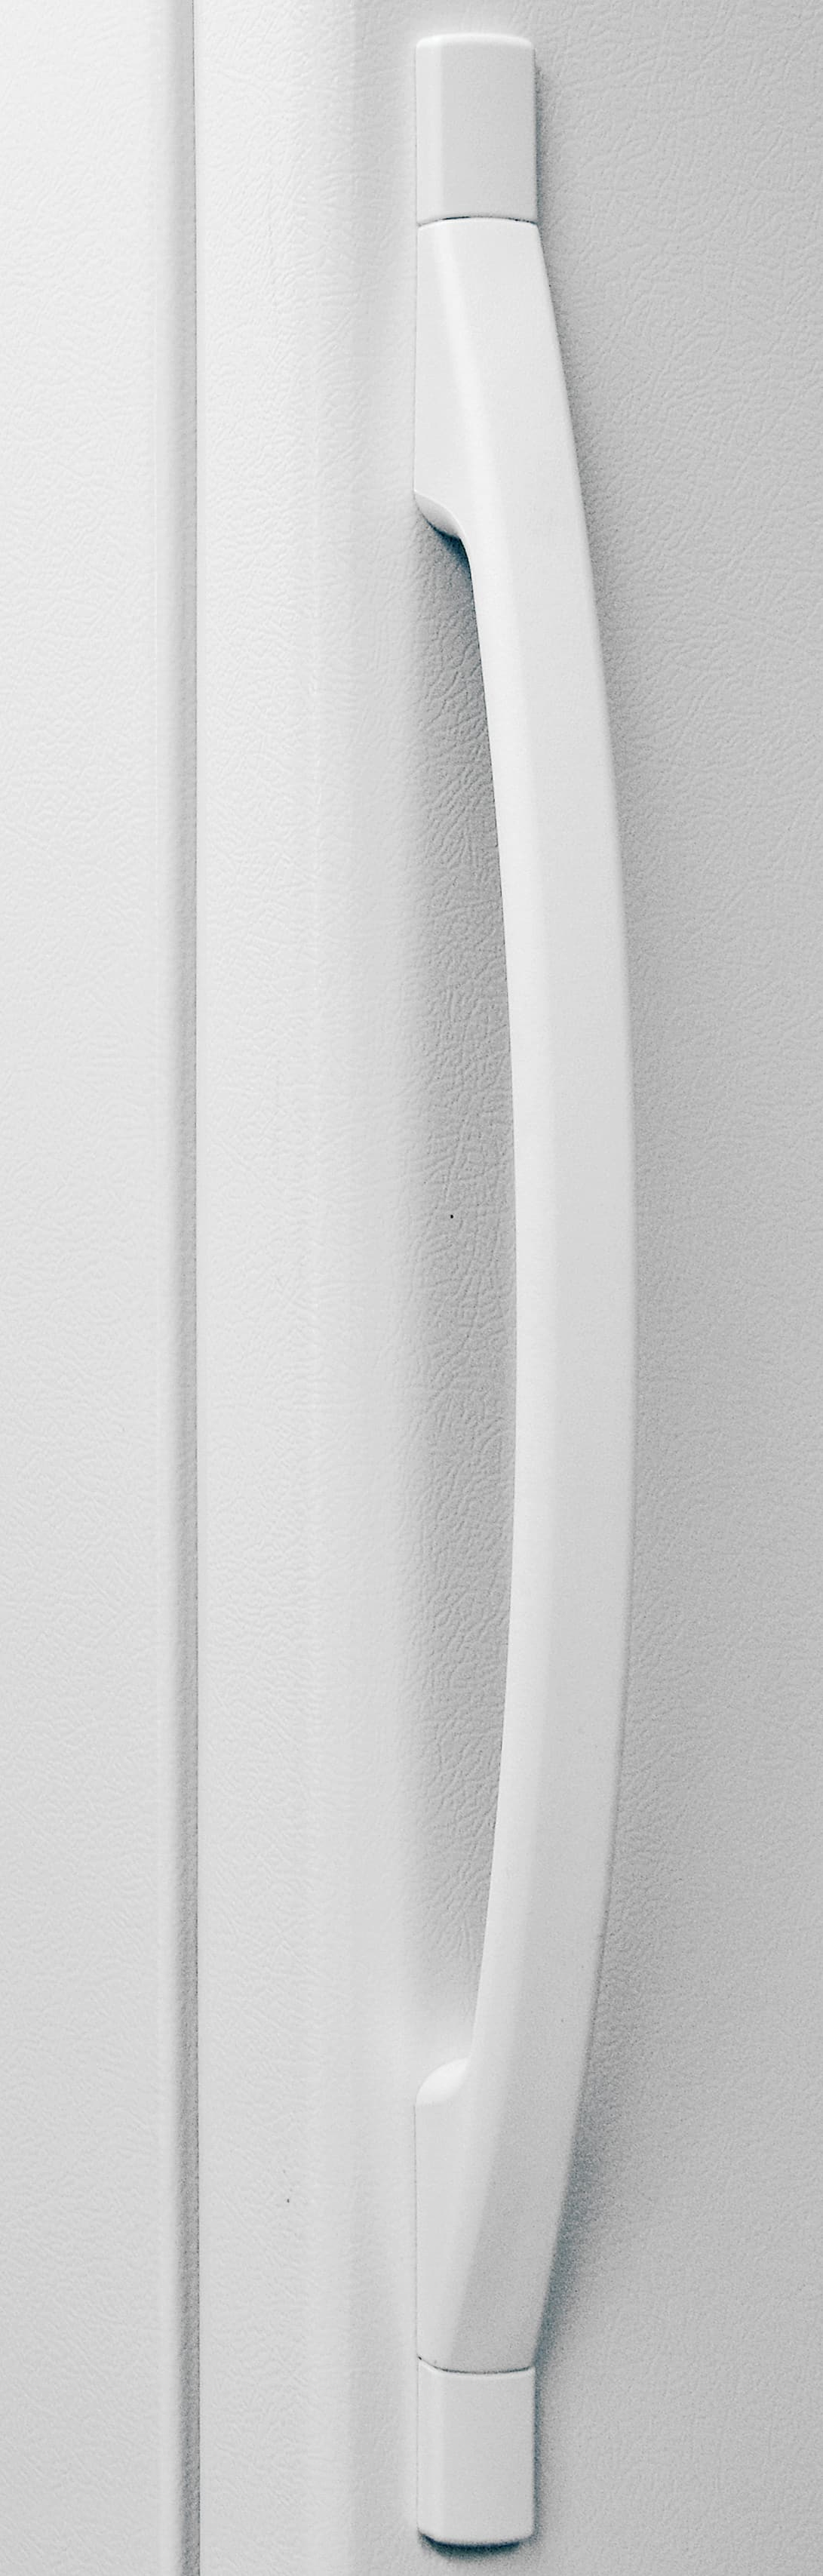 You'll notice the absence of a door lock near the handle of the Whirlpool EV160NZTQ.